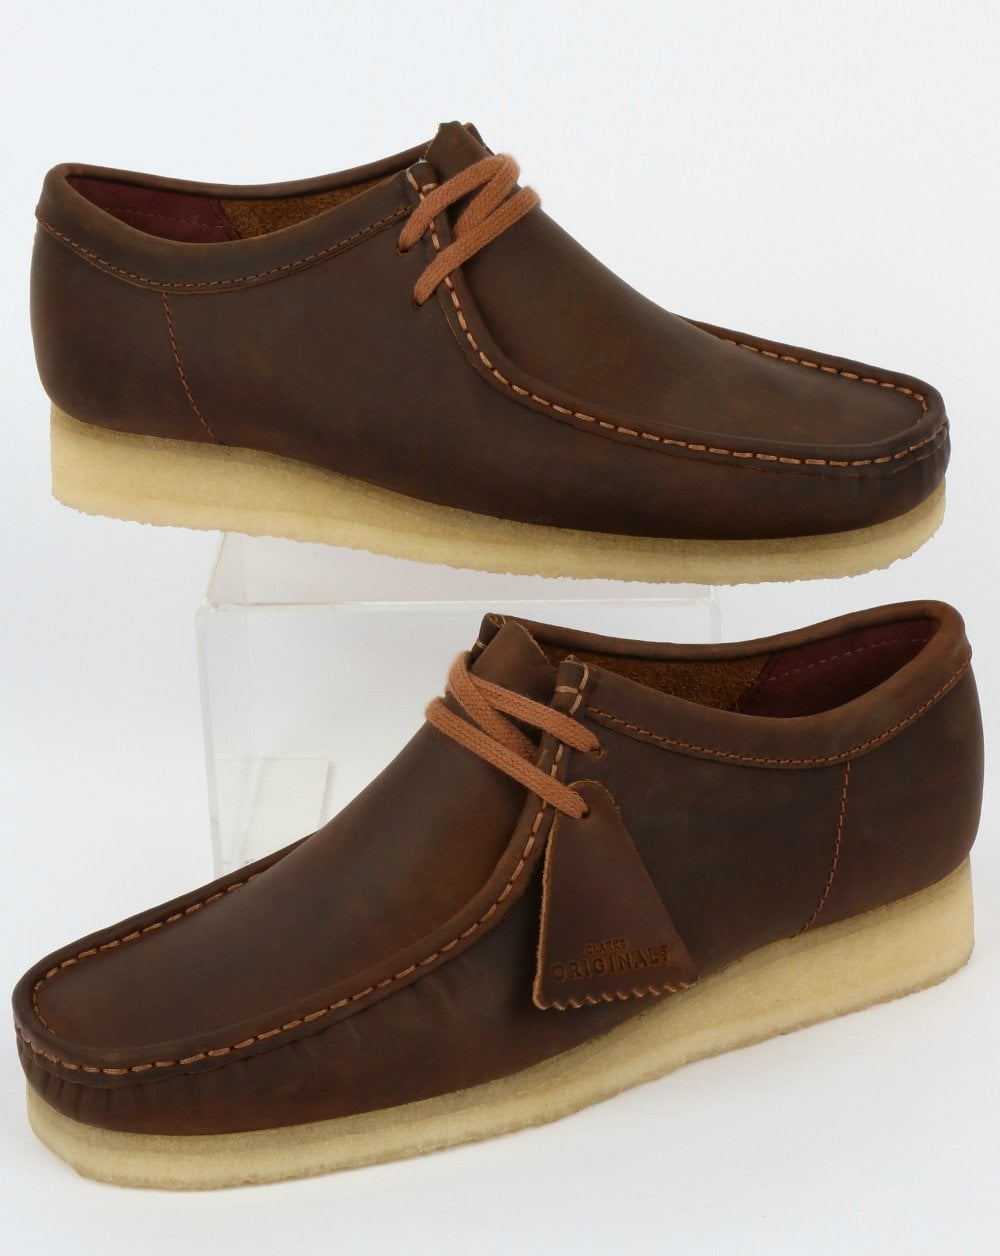 get cheap promo code cheaper Clarks Originals Wallabee Shoes Beeswax